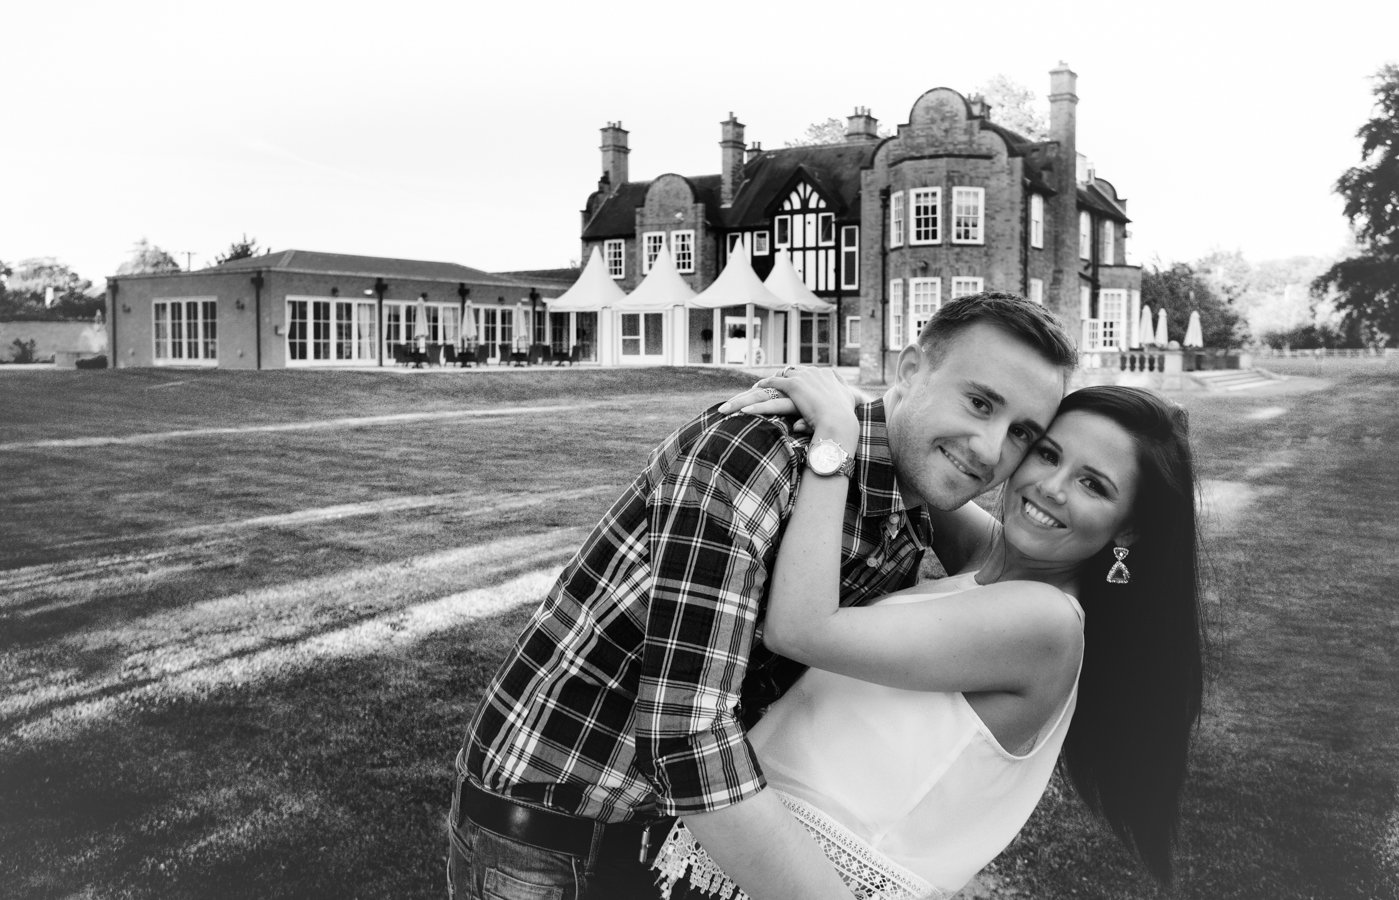 029 -  Jacqueline and Davids preWED love session at Kelham House Country Manor Hotel by www.markpugh.com - 2.JPG